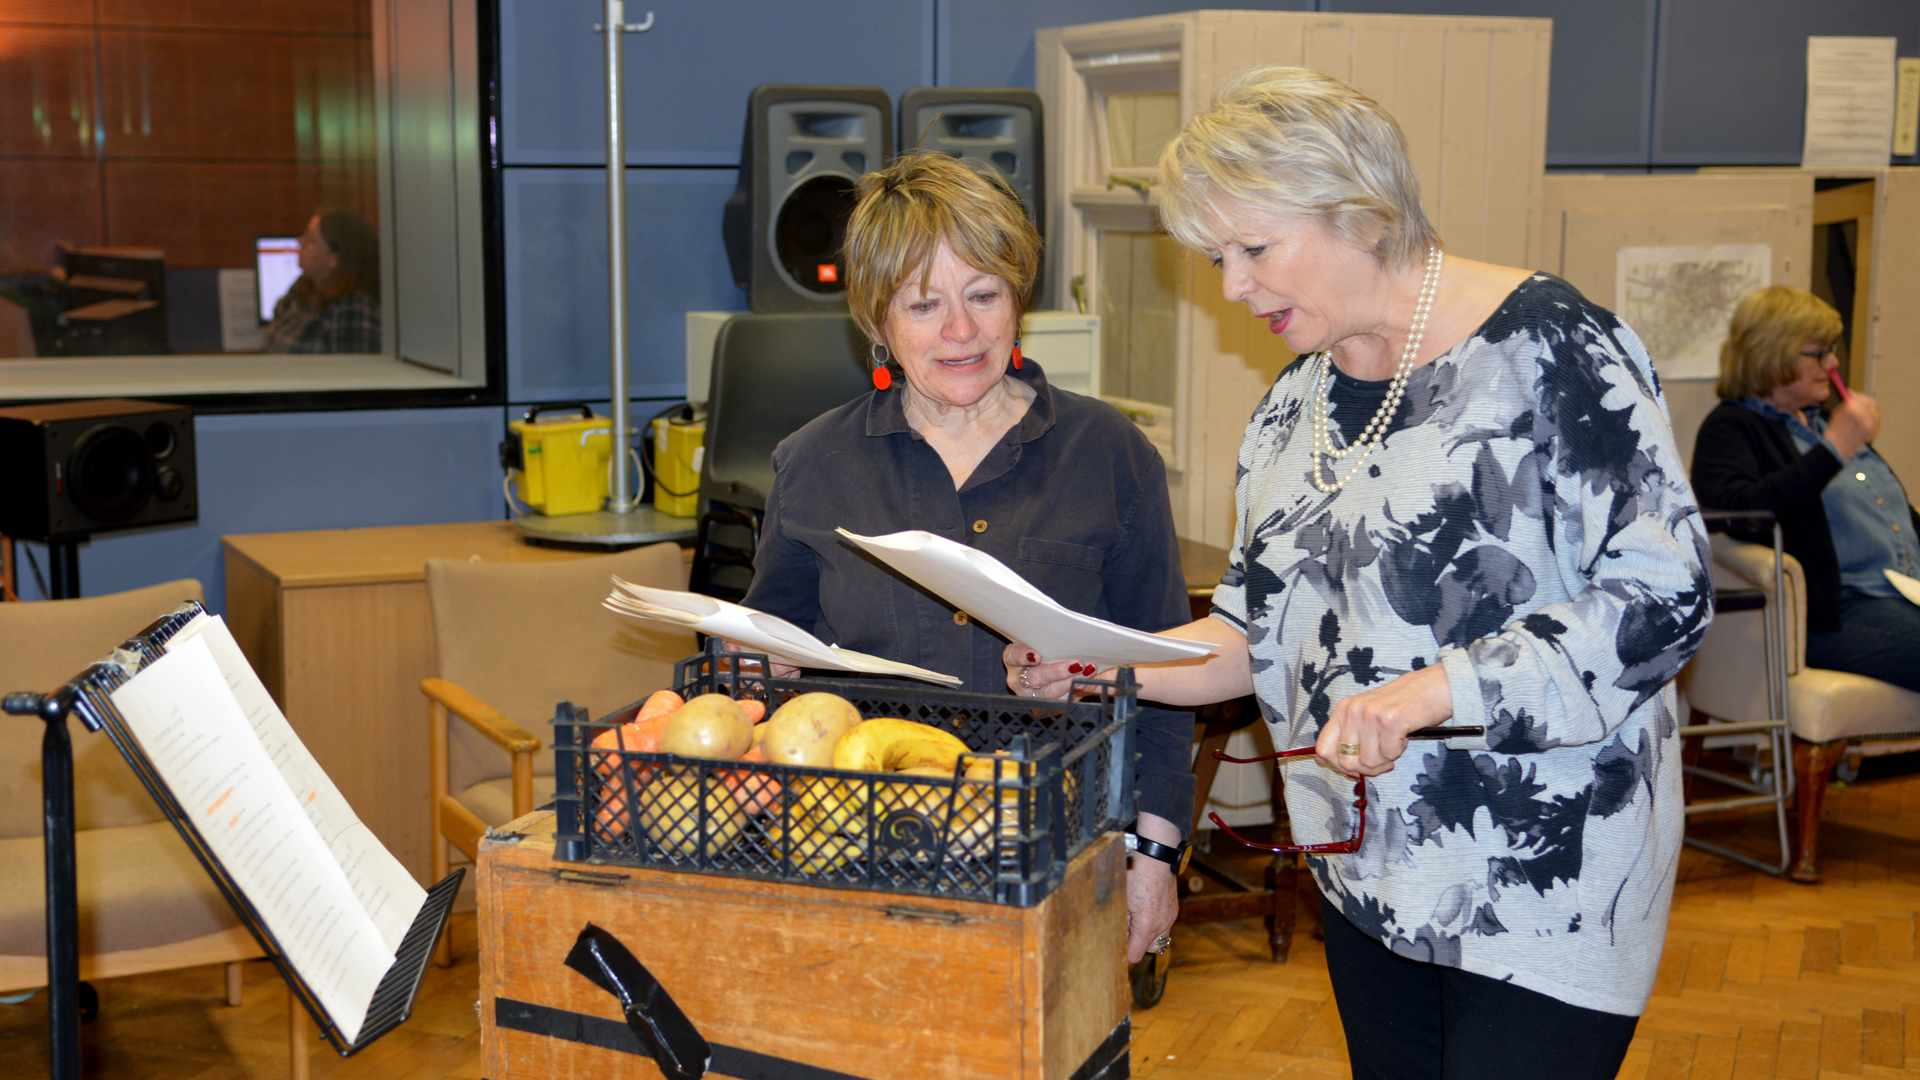 Sheila Dillon and Alison Steadman in Ambridge_credit BBC (3)